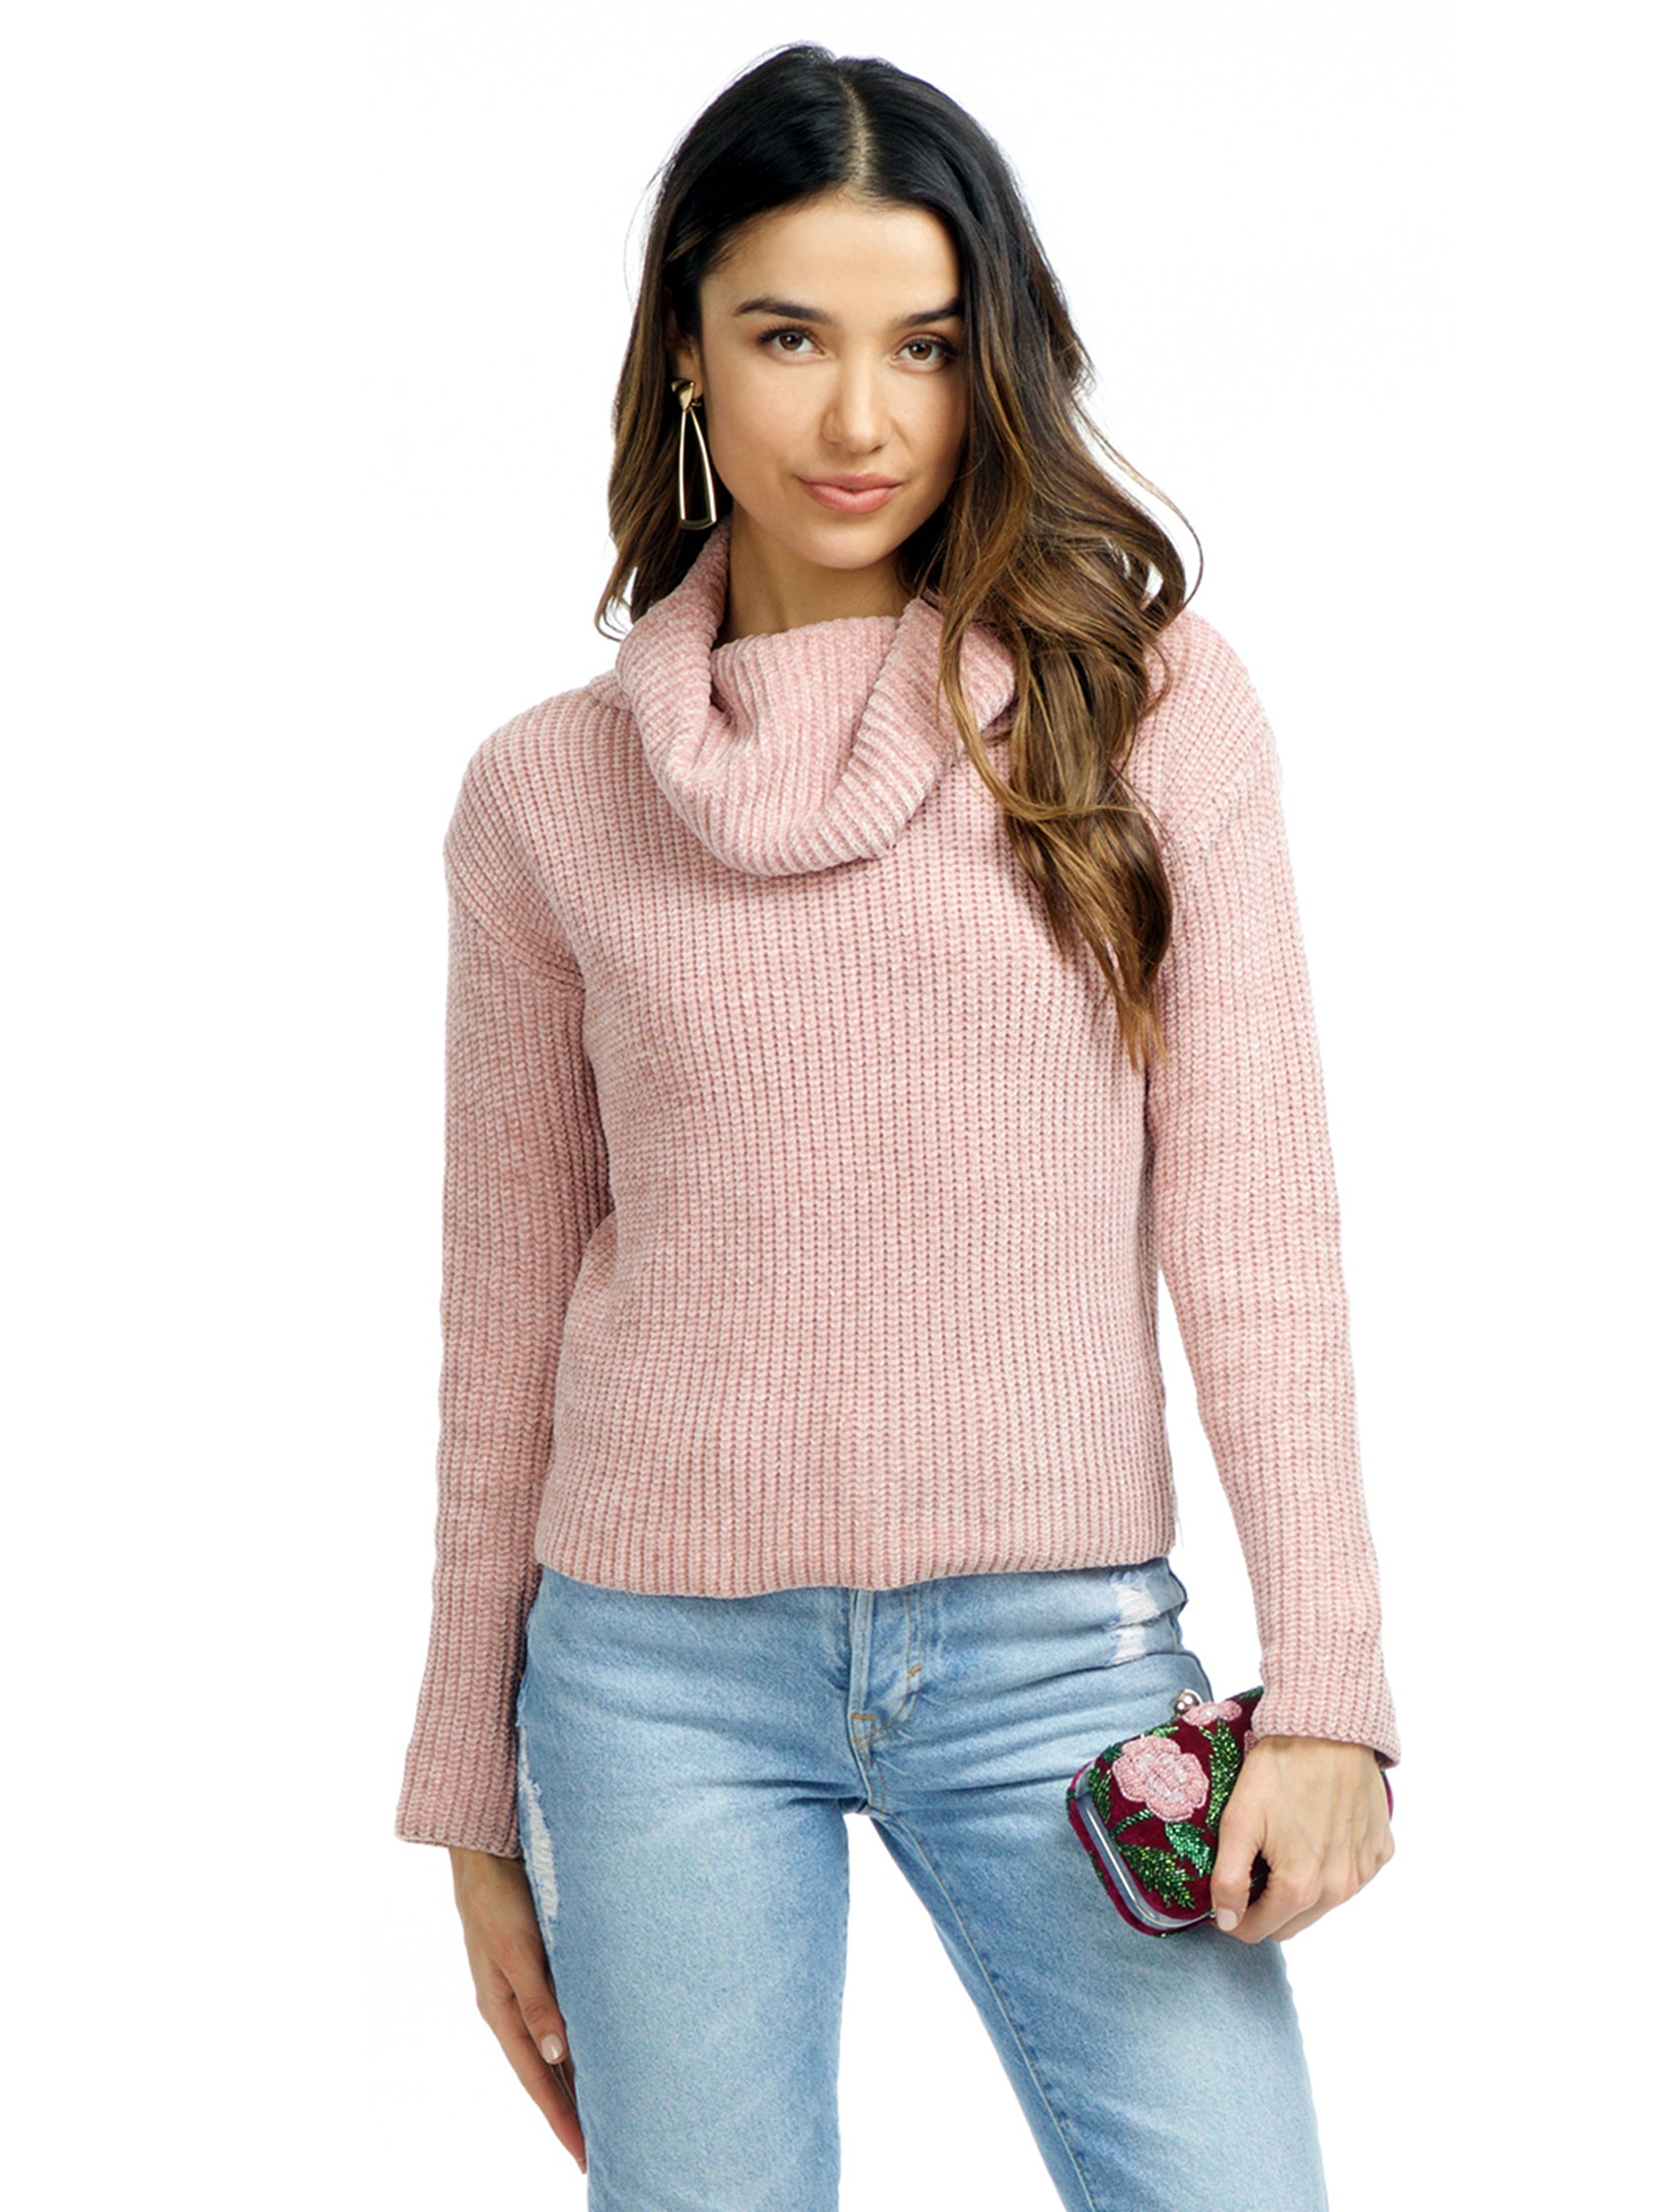 Girl outfit in a sweater rental from FashionPass called Make Me Blush Sweater